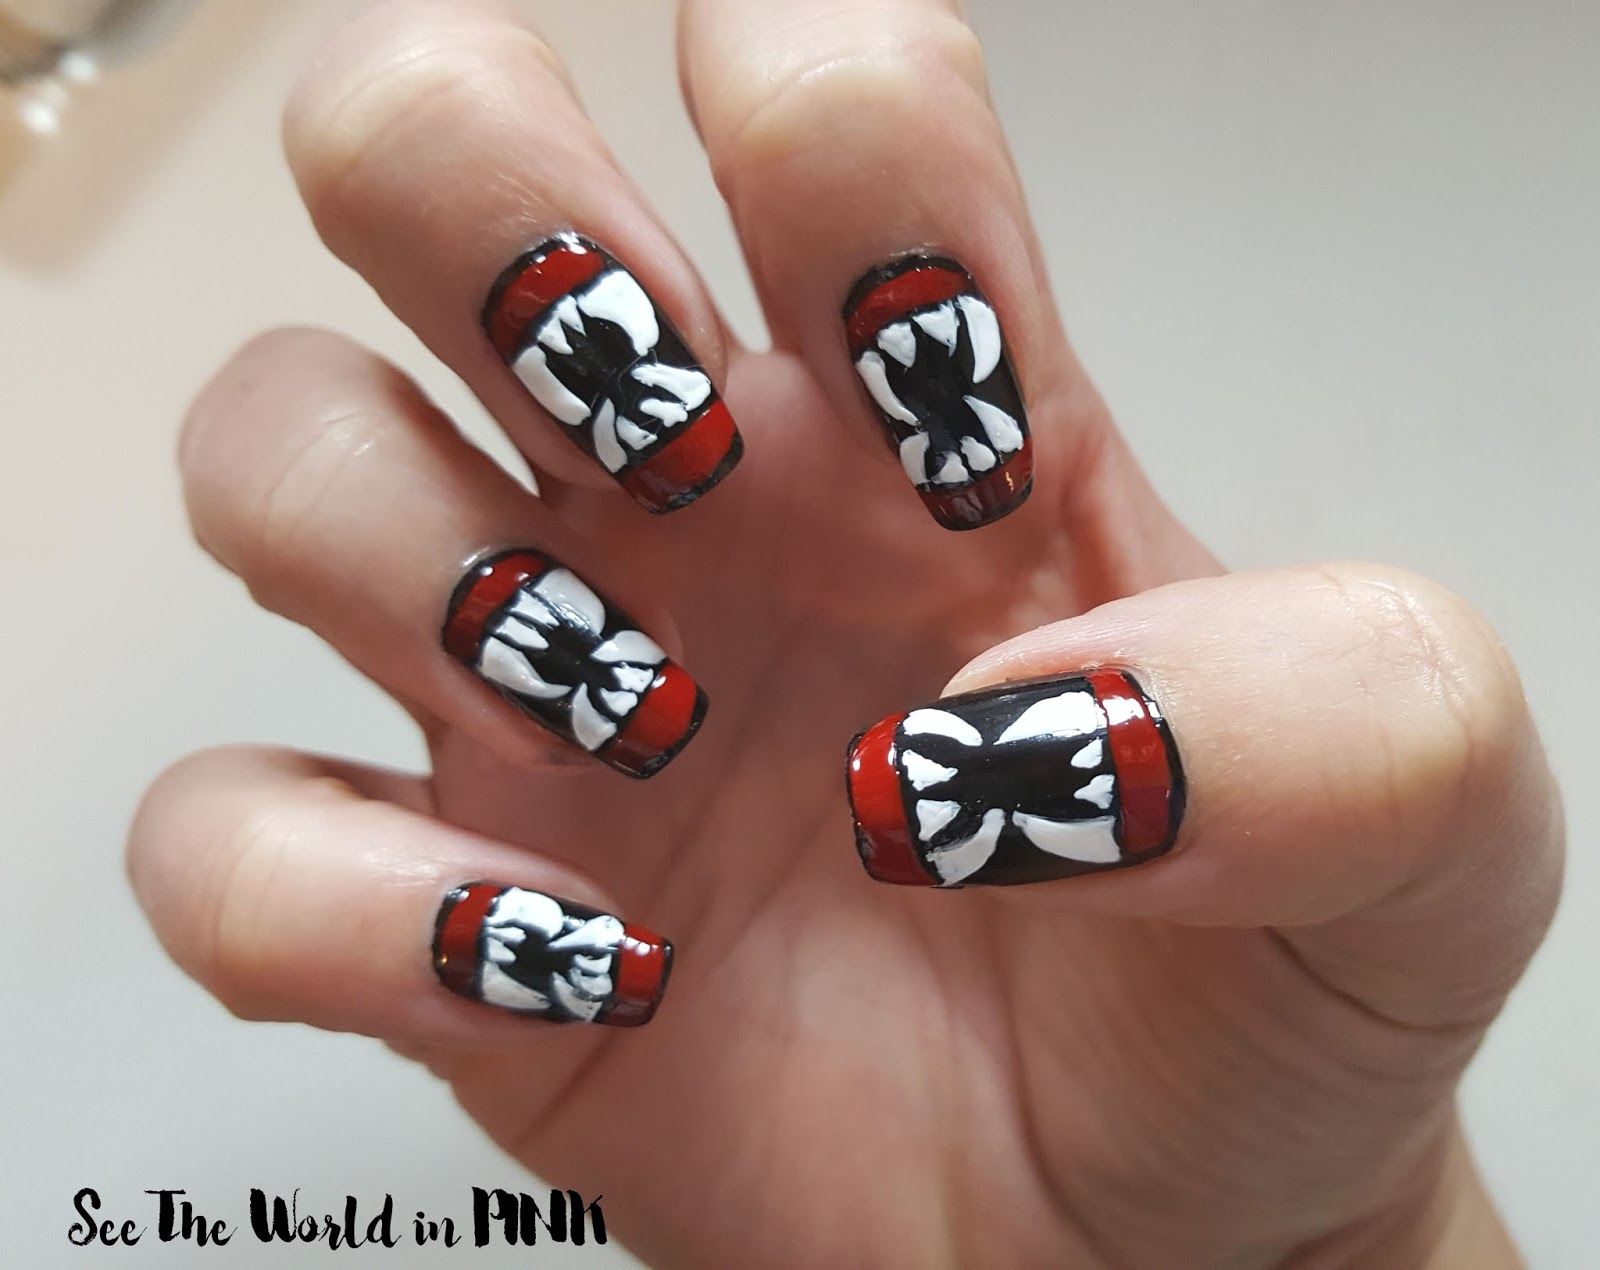 Halloween Manicure Tuesday - Vampire Teeth Nail Art